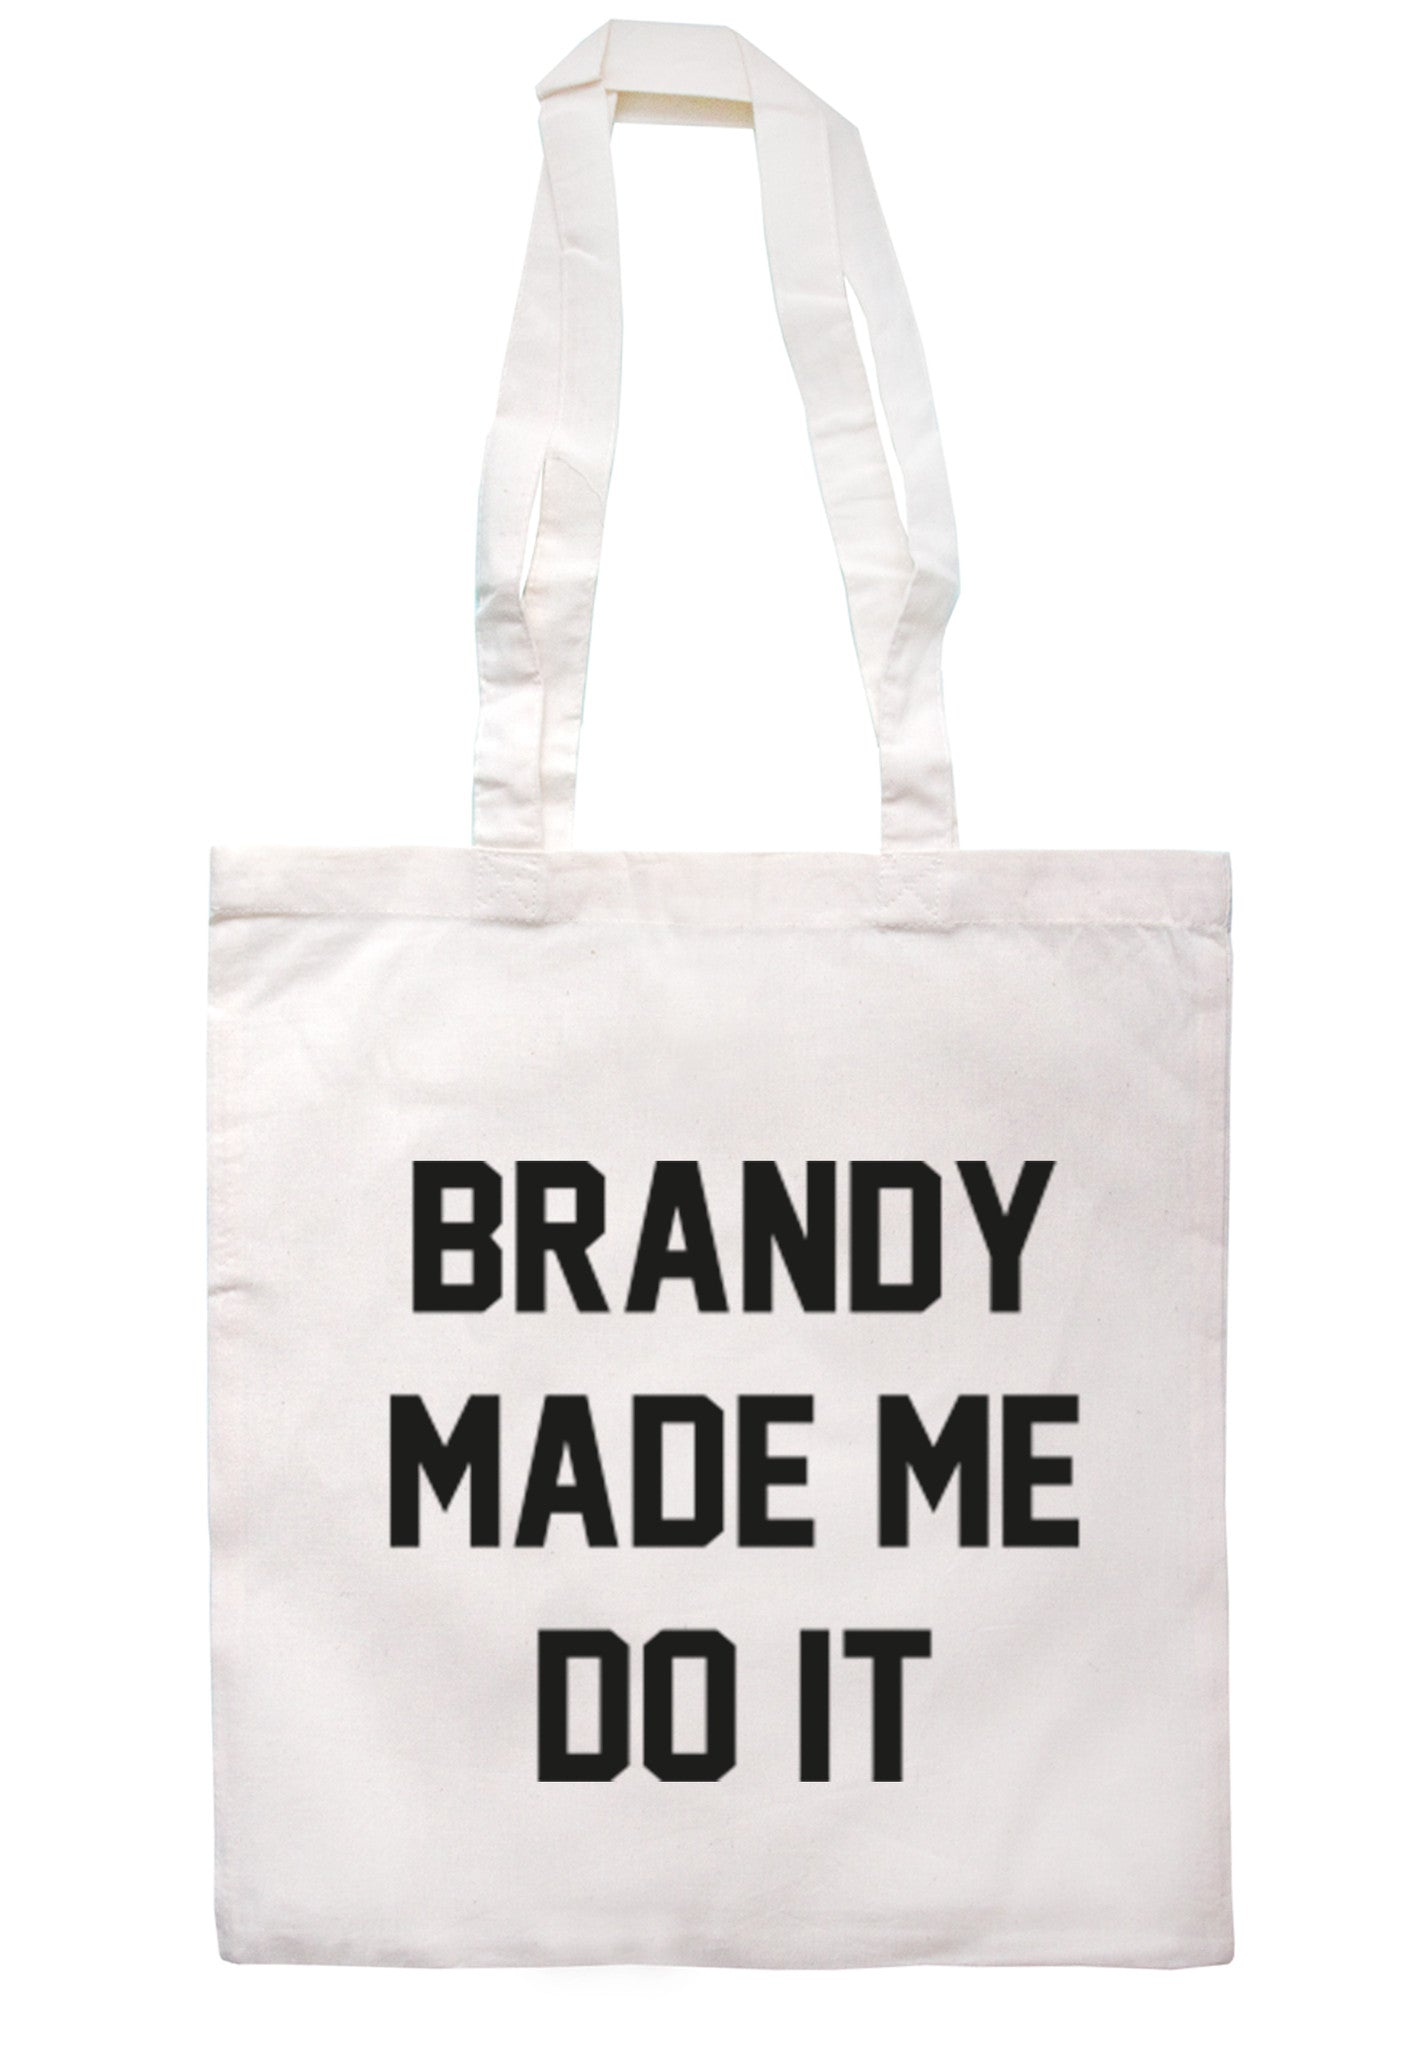 Brandy Made Me Do It Tote Bag TB0012 - Illustrated Identity Ltd.